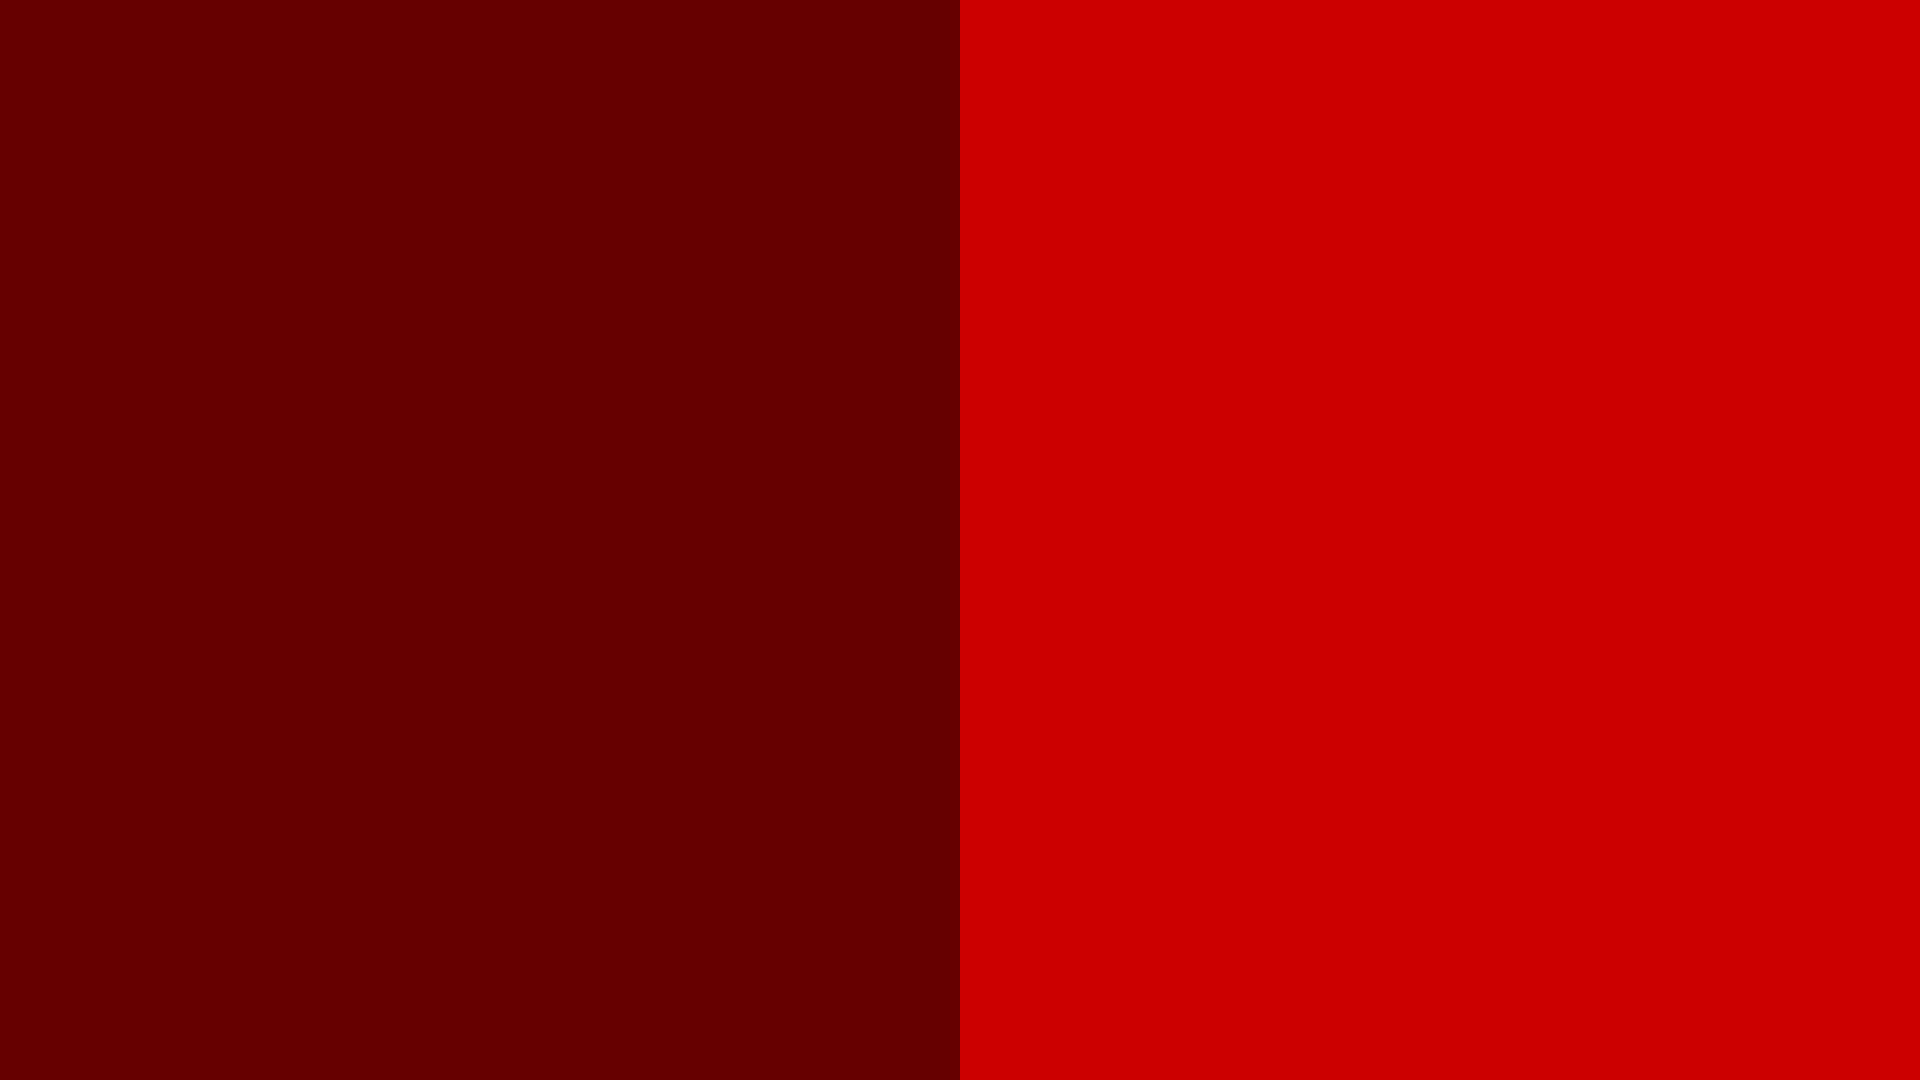 Red Blood Cell Color Palette